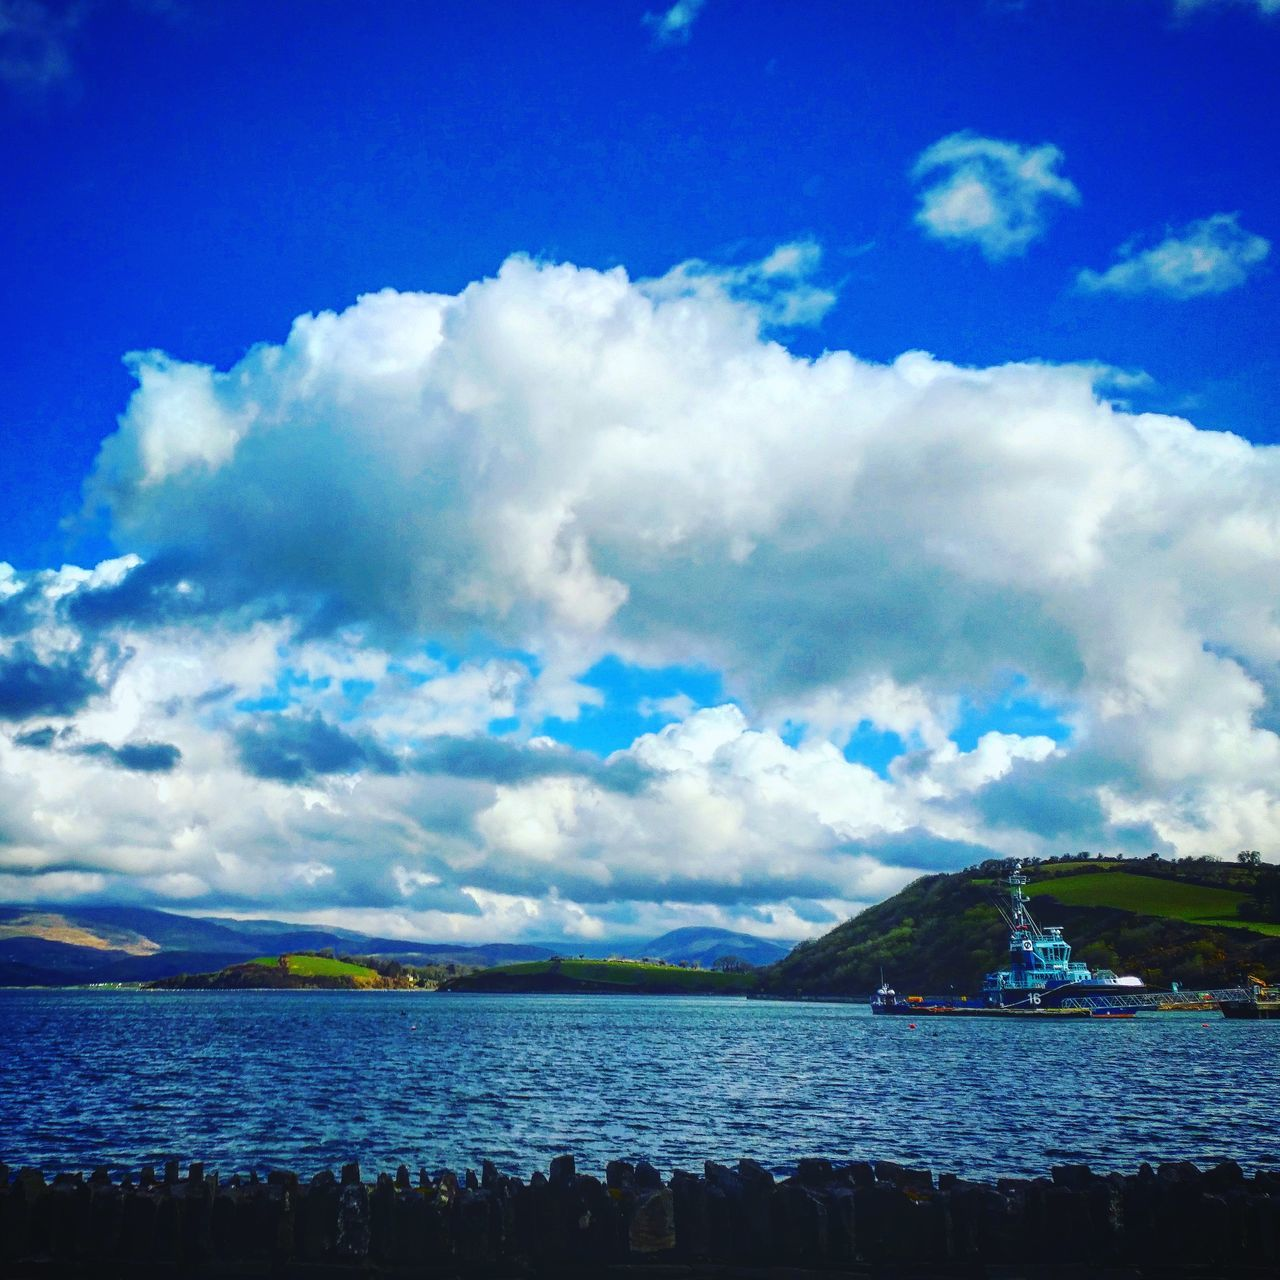 sky, cloud - sky, scenics, beauty in nature, tranquility, water, tranquil scene, nature, sea, mountain, outdoors, blue, nautical vessel, idyllic, day, no people, travel destinations